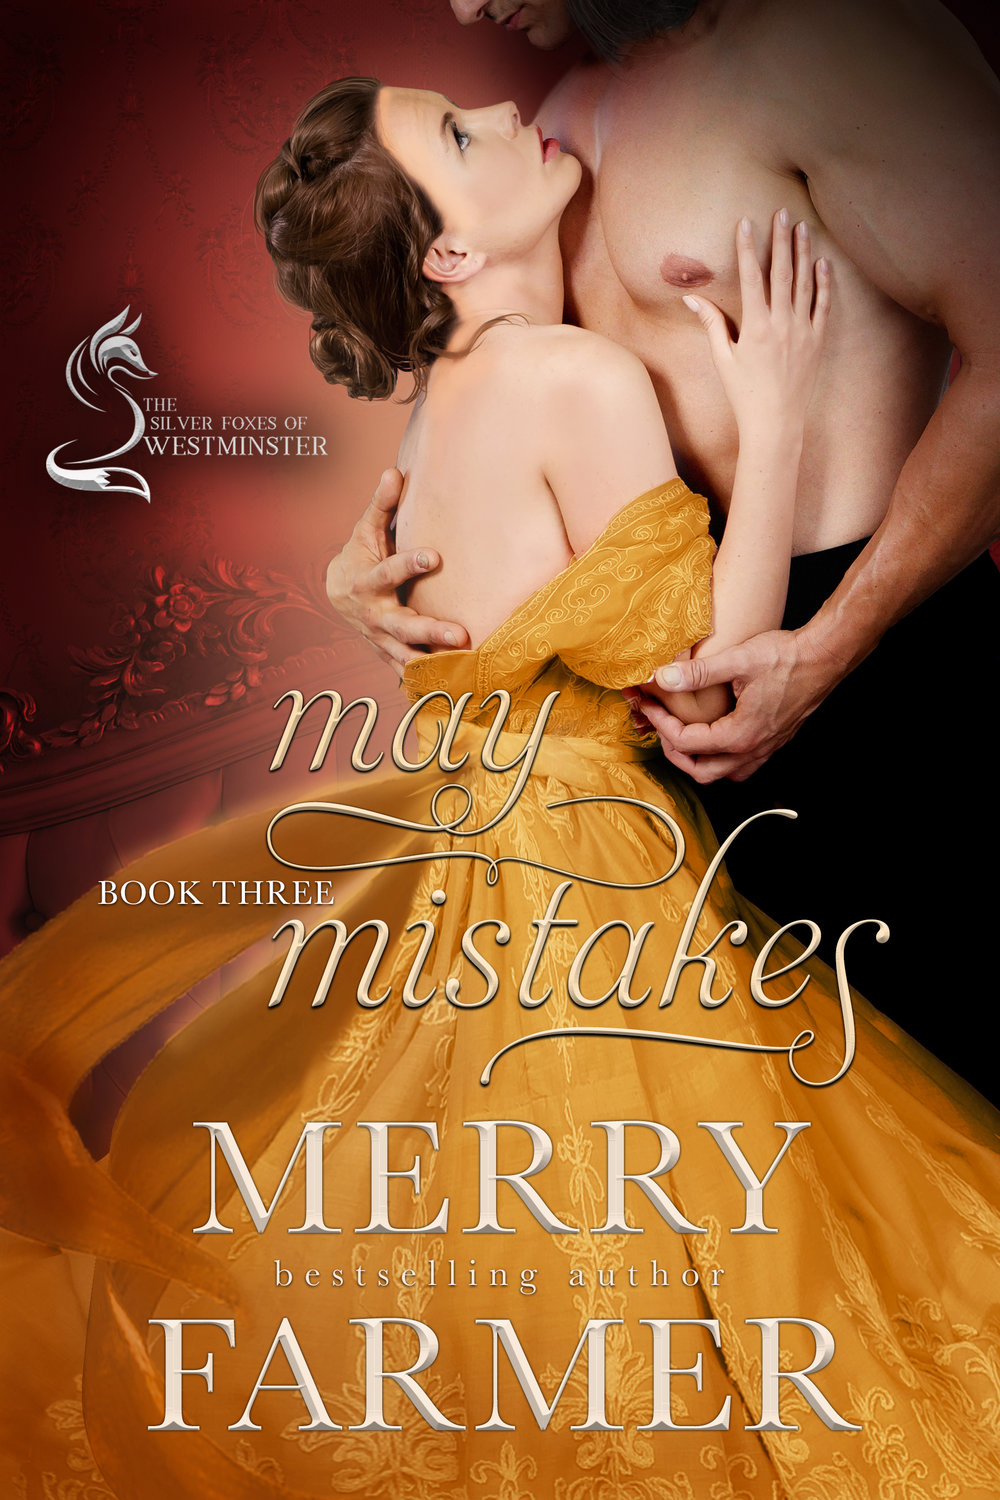 May Mistakes (Book Three) - After the death of her father, Miss Elaine Bond had decided to embrace life as an independent woman…much to the chagrin of her neighbors. Her eccentric ways alarm the entire town of Brynthwaite, to the point where concerned friends turn to the only person they believe can settle Elaine into a respectable married life, mysterious bookseller Mr. Basil Wall.Basil has been in love with Elaine since the moment he moved to Brynthwaite years ago, but the secret that drove him out of London and into the remote Lake District has kept him from declaring himself. At least until a twist of fate throws the two potential lovers together in a way that neither of them expected.But what begins as a romance that is as charming as it is sultry turns into a game with far higher stakes when the infamous Missing Earl of Waltham is tracked down and dragged out into the light. And with the fate of Parliament—not to mention a bill increasing the rights of women—in the balance, Basil must choose between love and duty. Which leaves Elaine caught between what is right and what is proper, and leads her to an adventure far more daring than any of her Brynthwaite neighbors could dream of.PLEASE BE ADVISED: Steam Level – Very Hot!If you would like to read about events leading up to May Mistakes, check out A WILD ADVENTURE, part of the West Meets East series, available now.